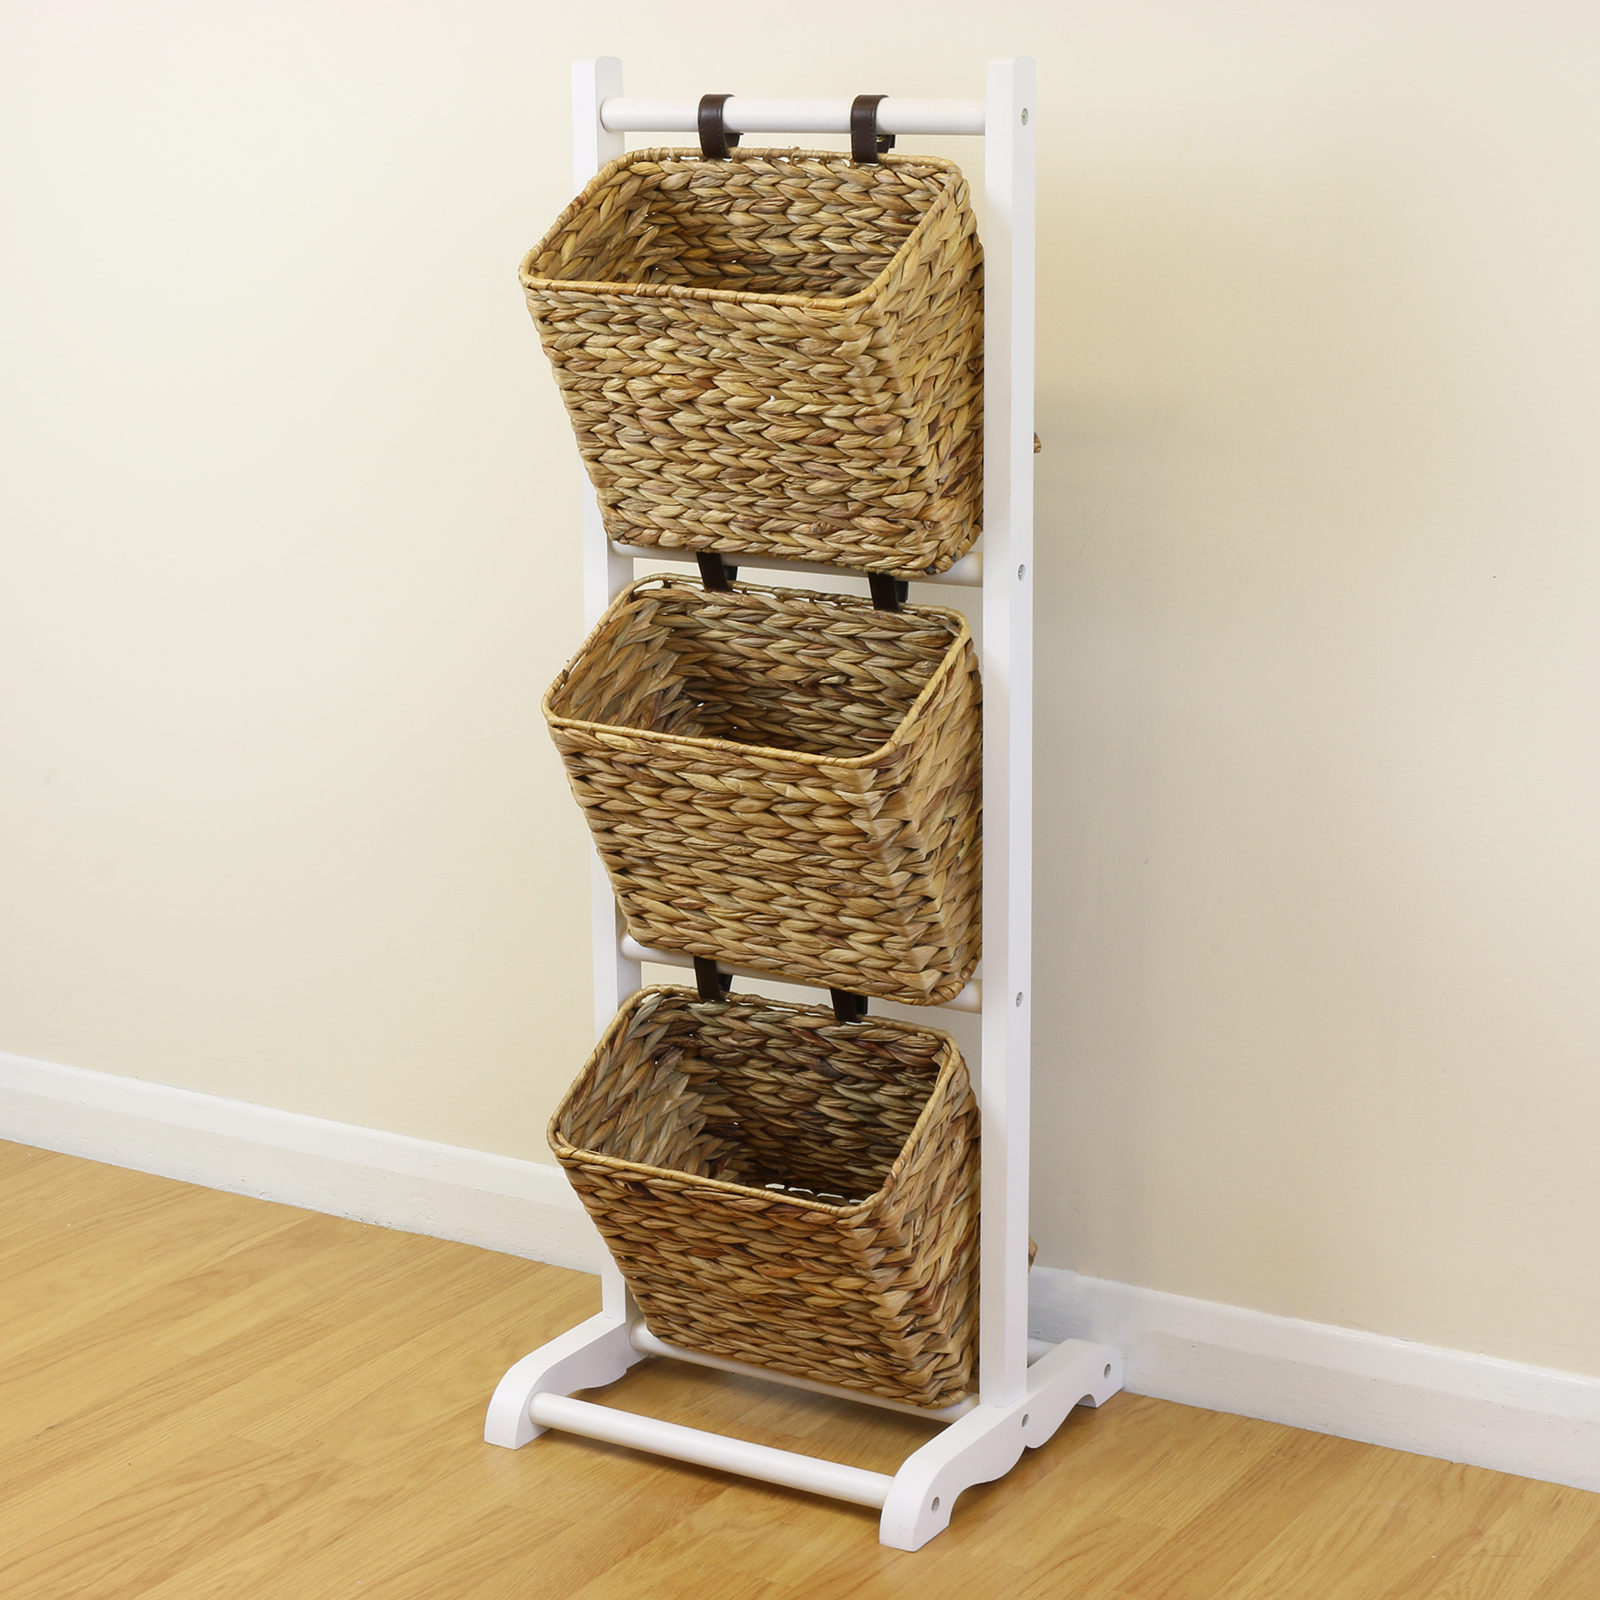 sale 3 tier white hanging wicker basket storage stand With wicker stands bathrooms